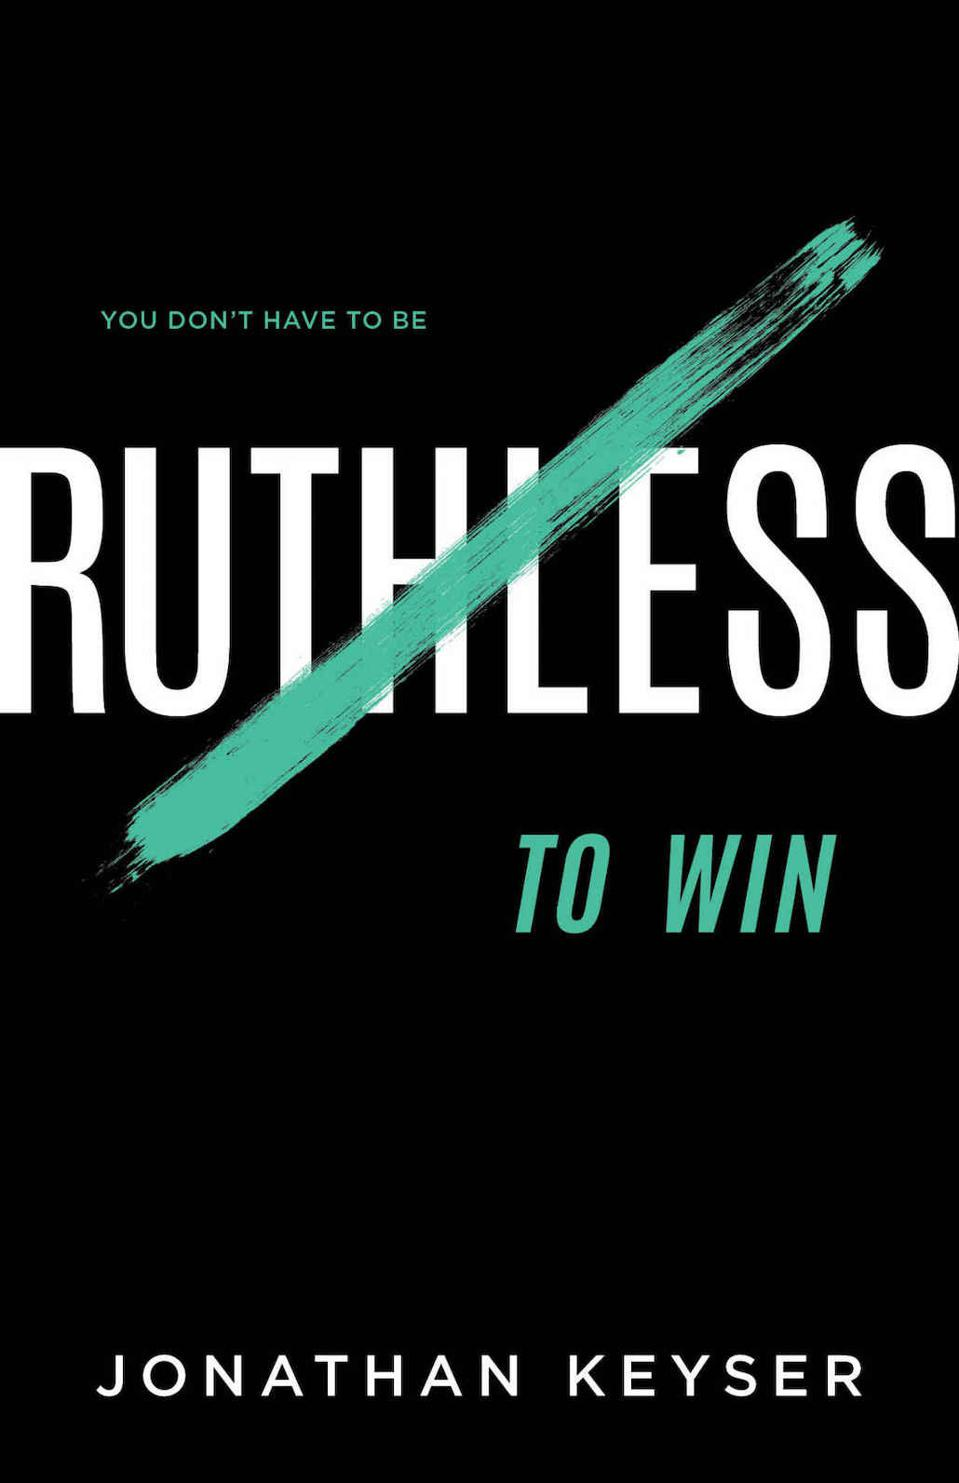 You Don't Have to Be Ruthless to Win: The Art of Badass Selfless Service by Jonathan Keyser